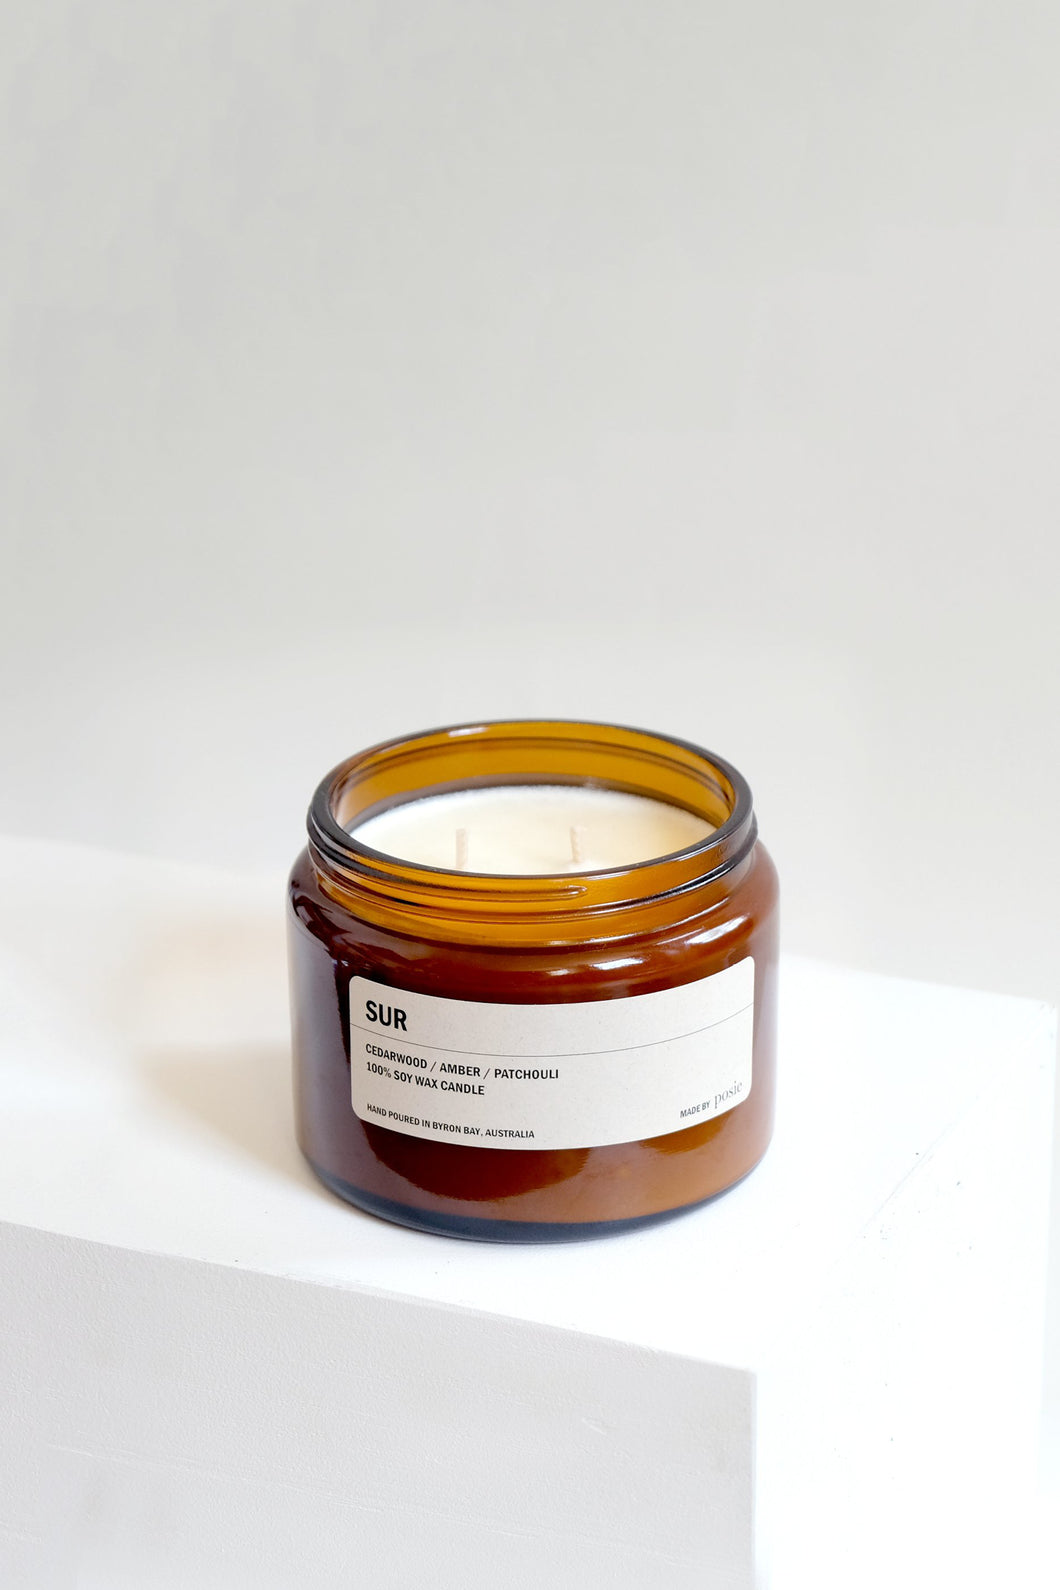 SUR: Cedarwood, Amber & Patchouli / Large